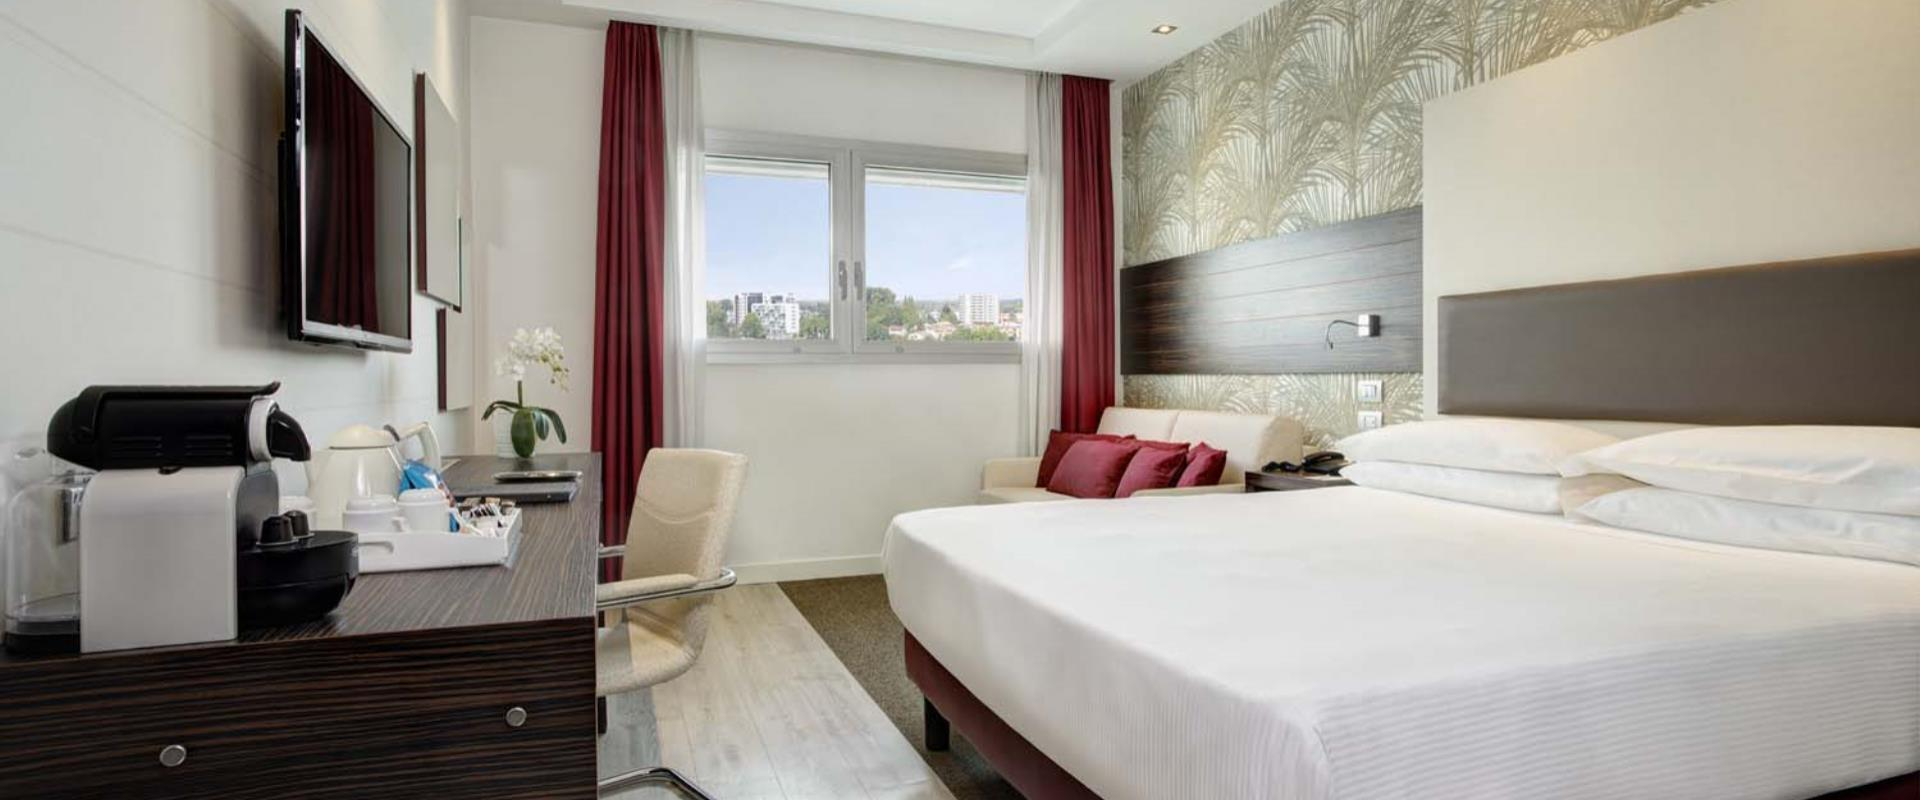 BW Plus Quid Hotel Venice - Rooms - Executive with sofa-bed